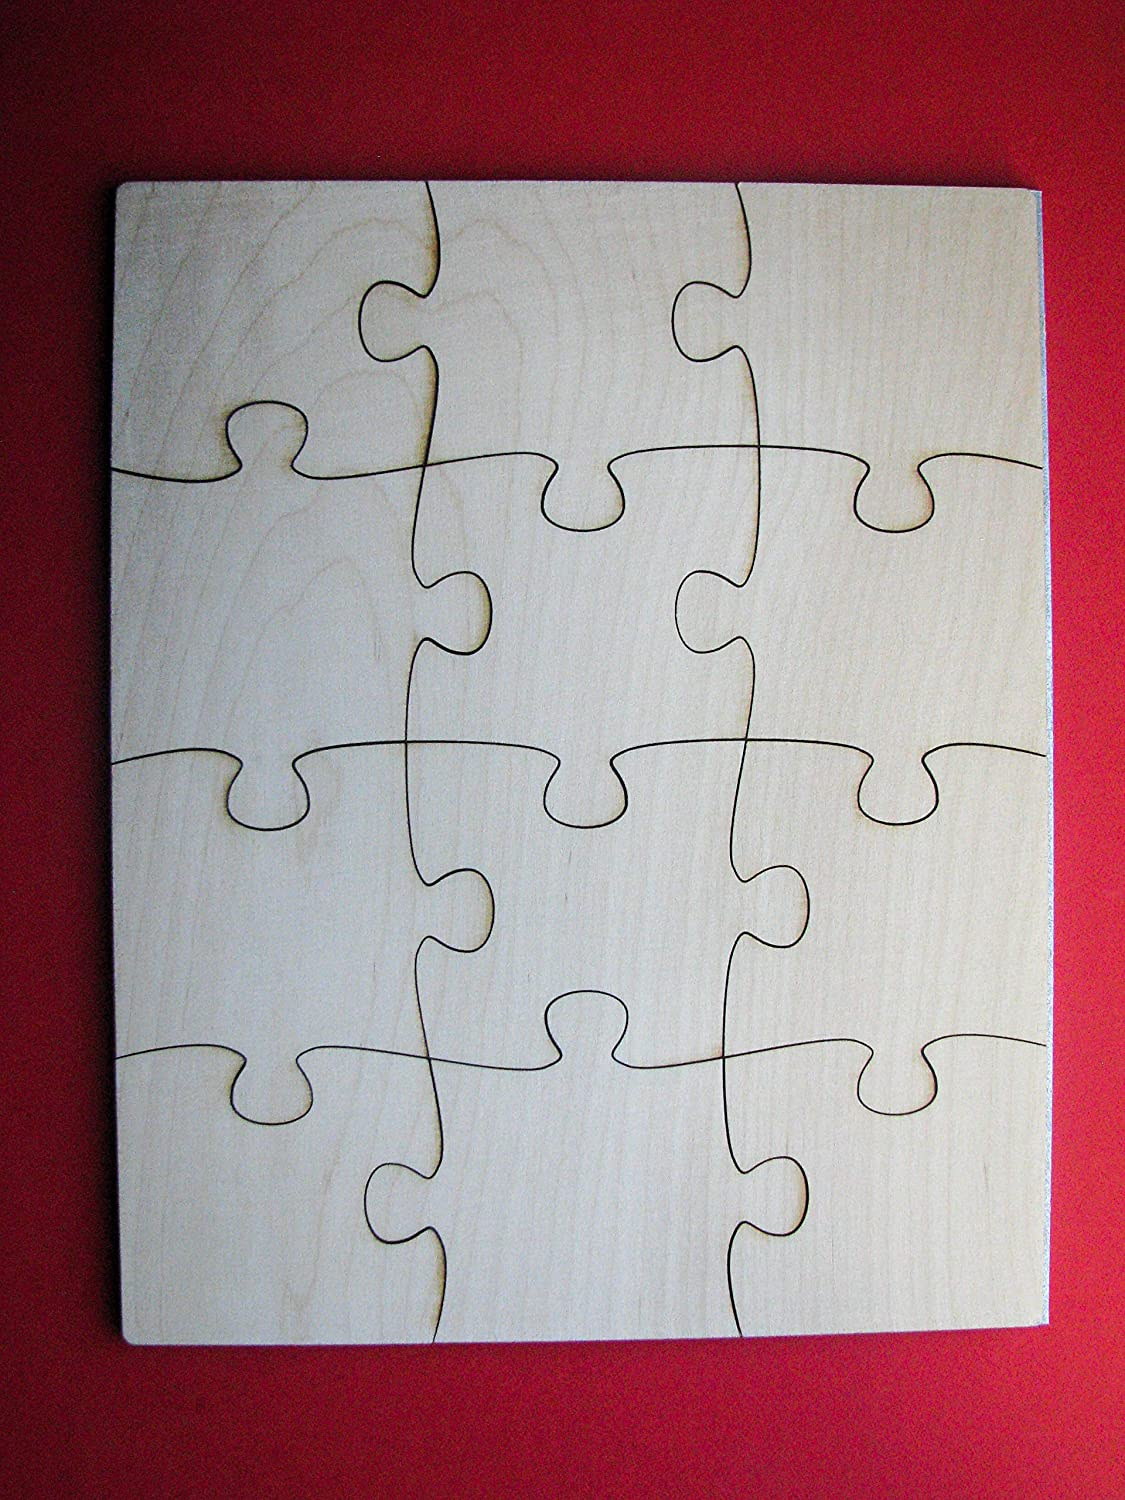 Blank Wooden Jigsaw Puzzle 8x10